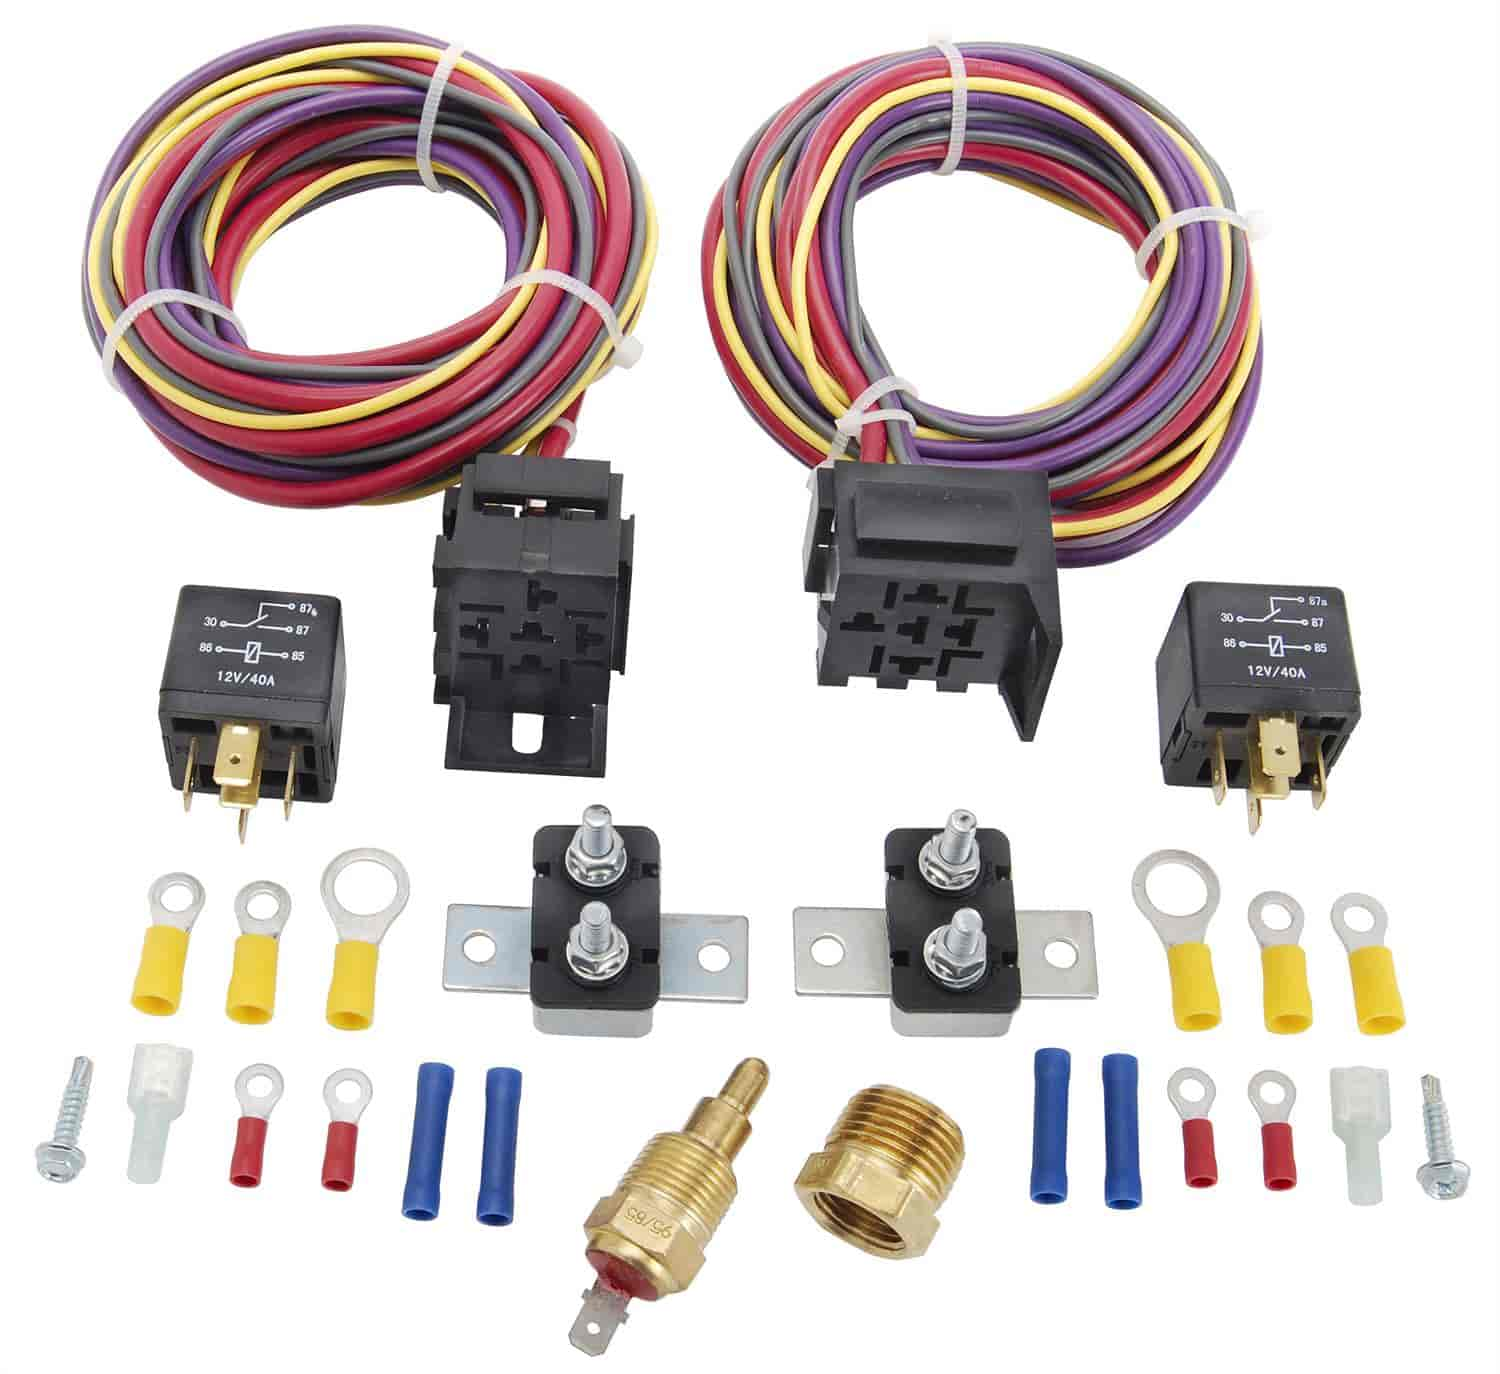 555 10571 jegs performance products 10571 dual fan wiring harness & relay jegs universal wiring harness at virtualis.co